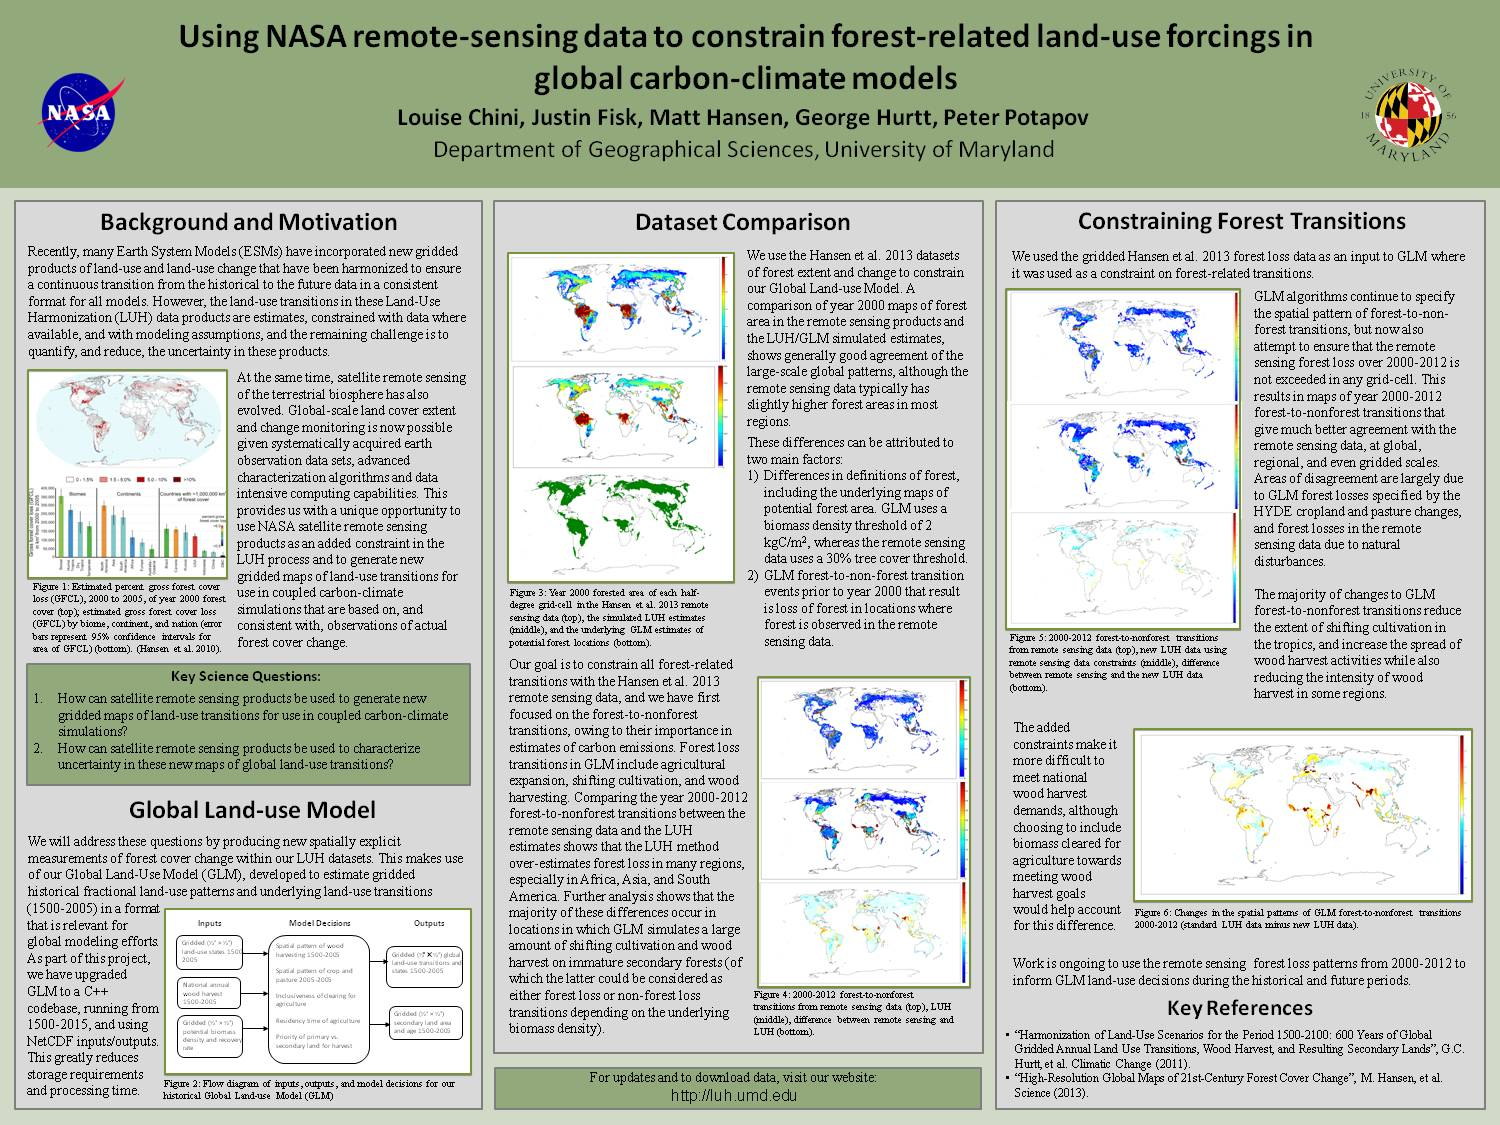 Using Nasa Remote-Sensing Data To Constrain Forest-Related Land-Use Forcings In Global Carbon-Climate Models by lchini